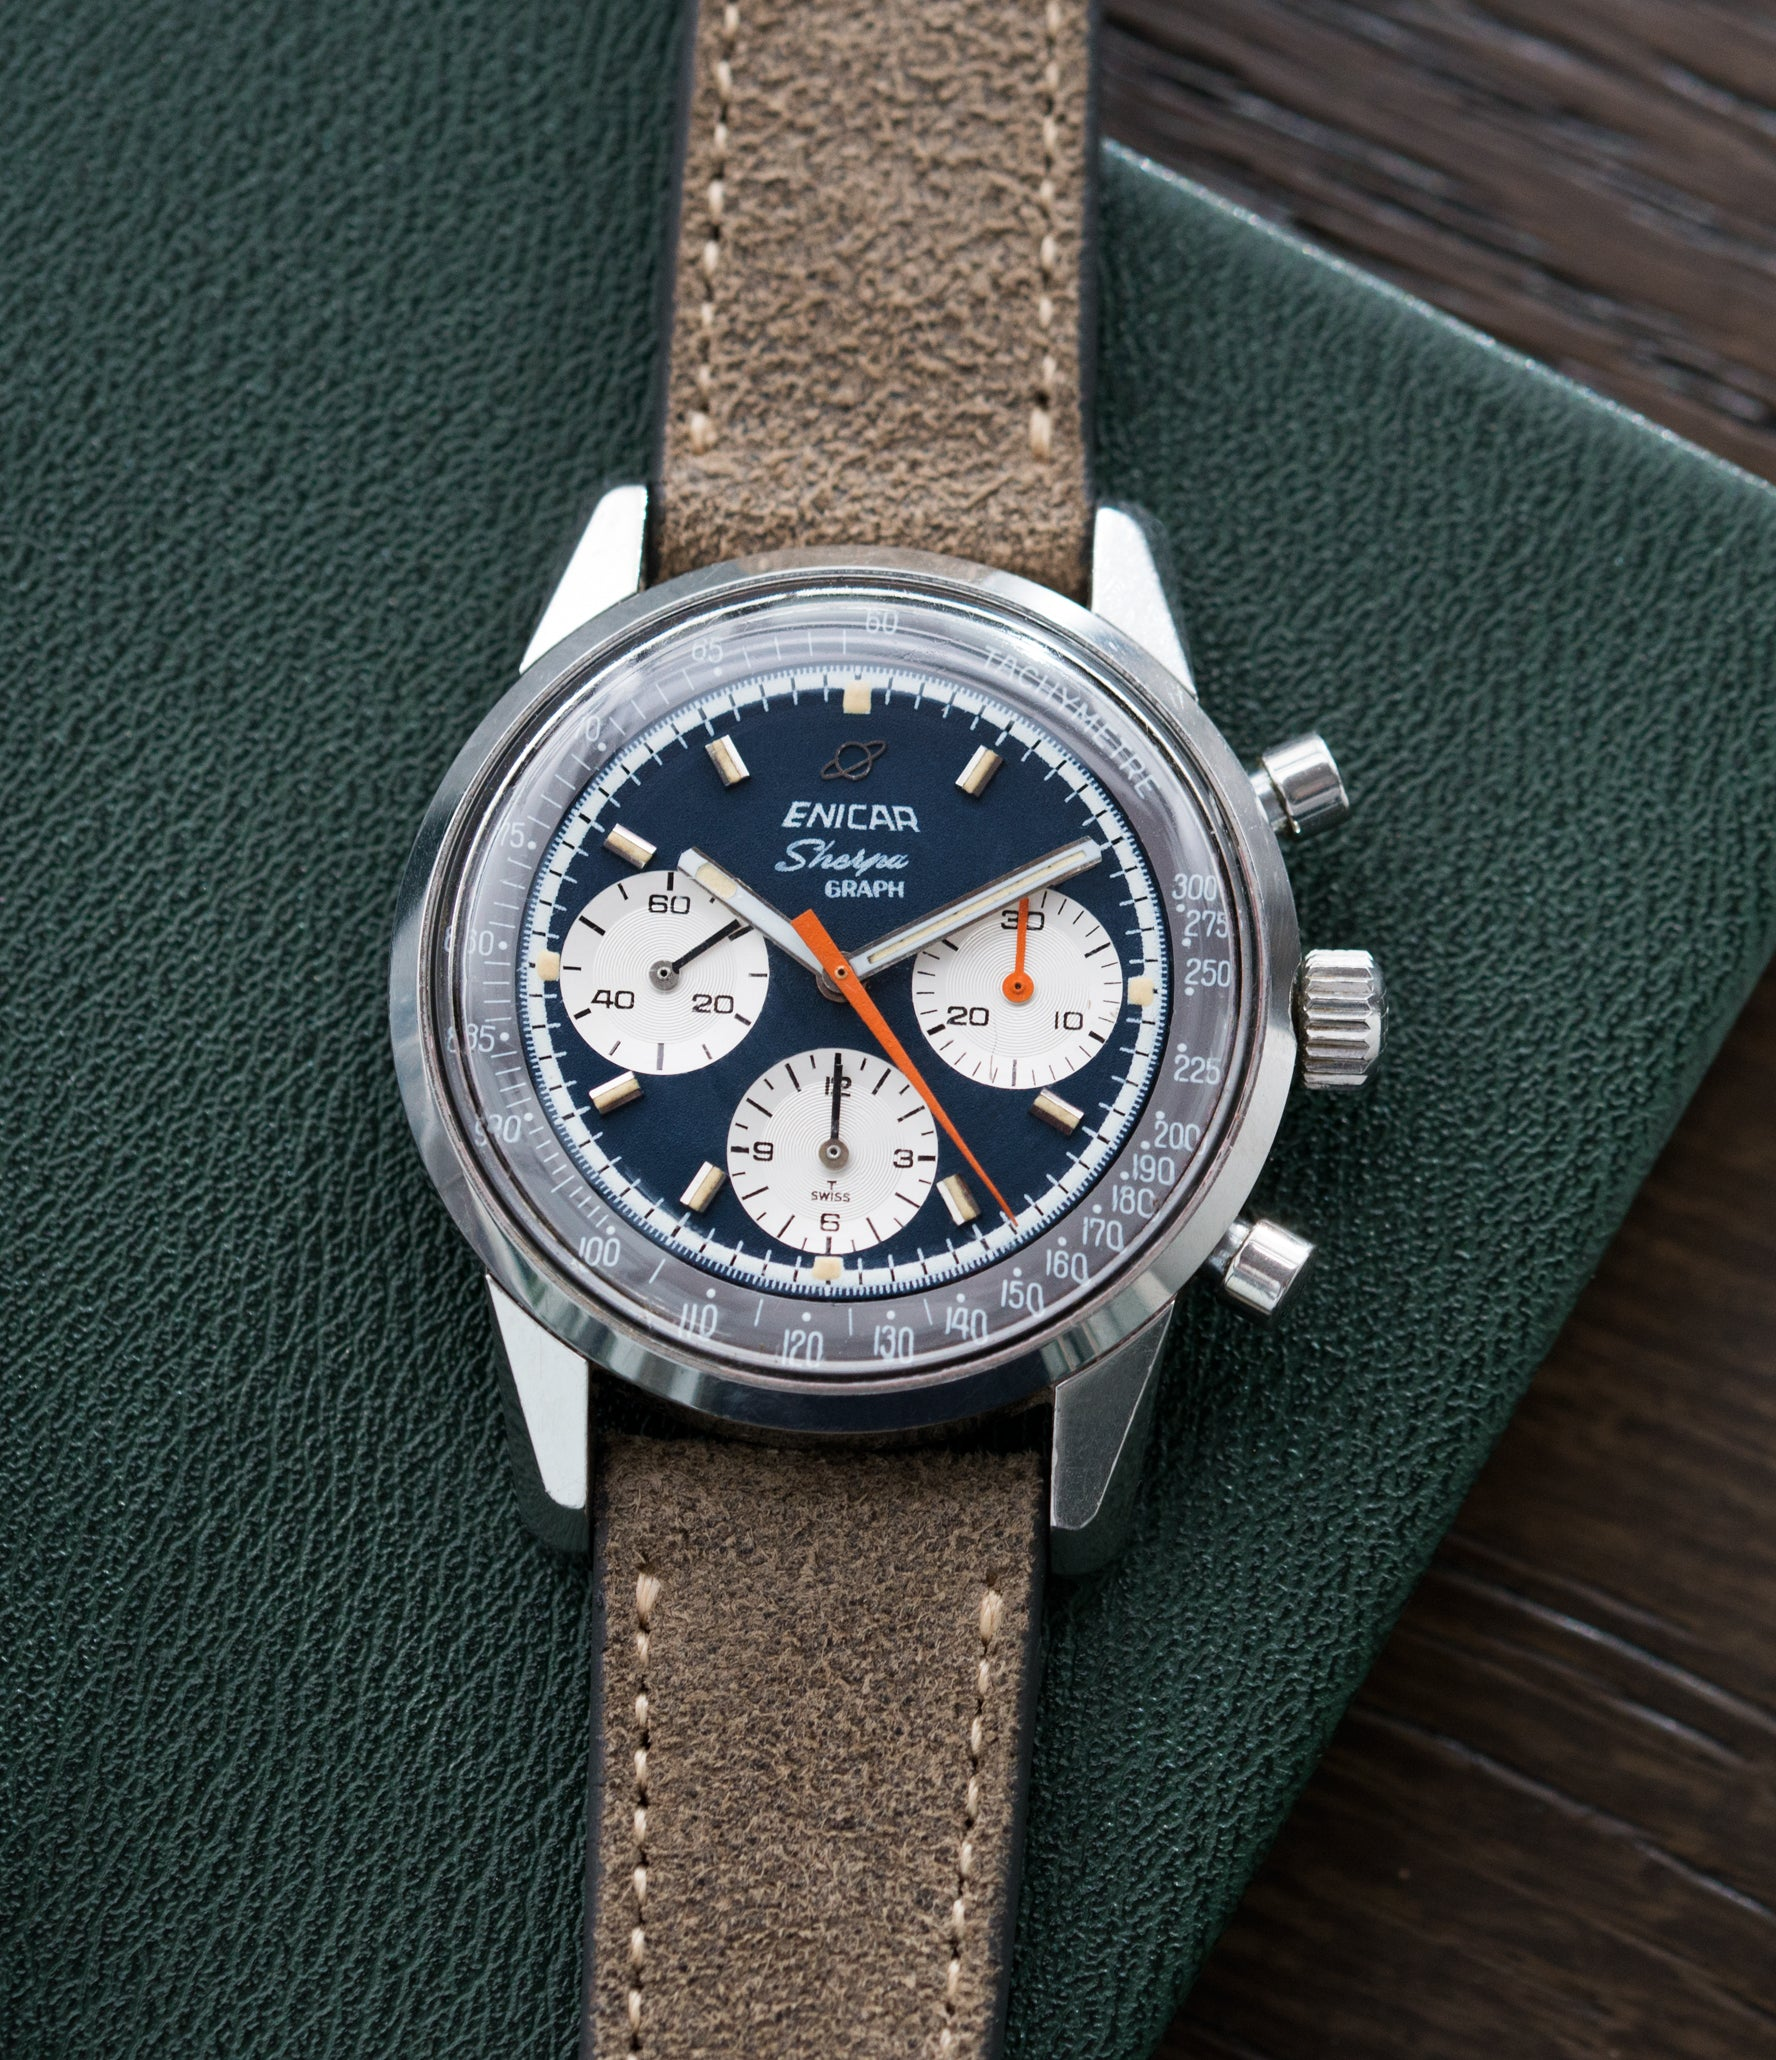 baltic watches hms vintage value bicompax inspired chronograph kickstarter proposition style